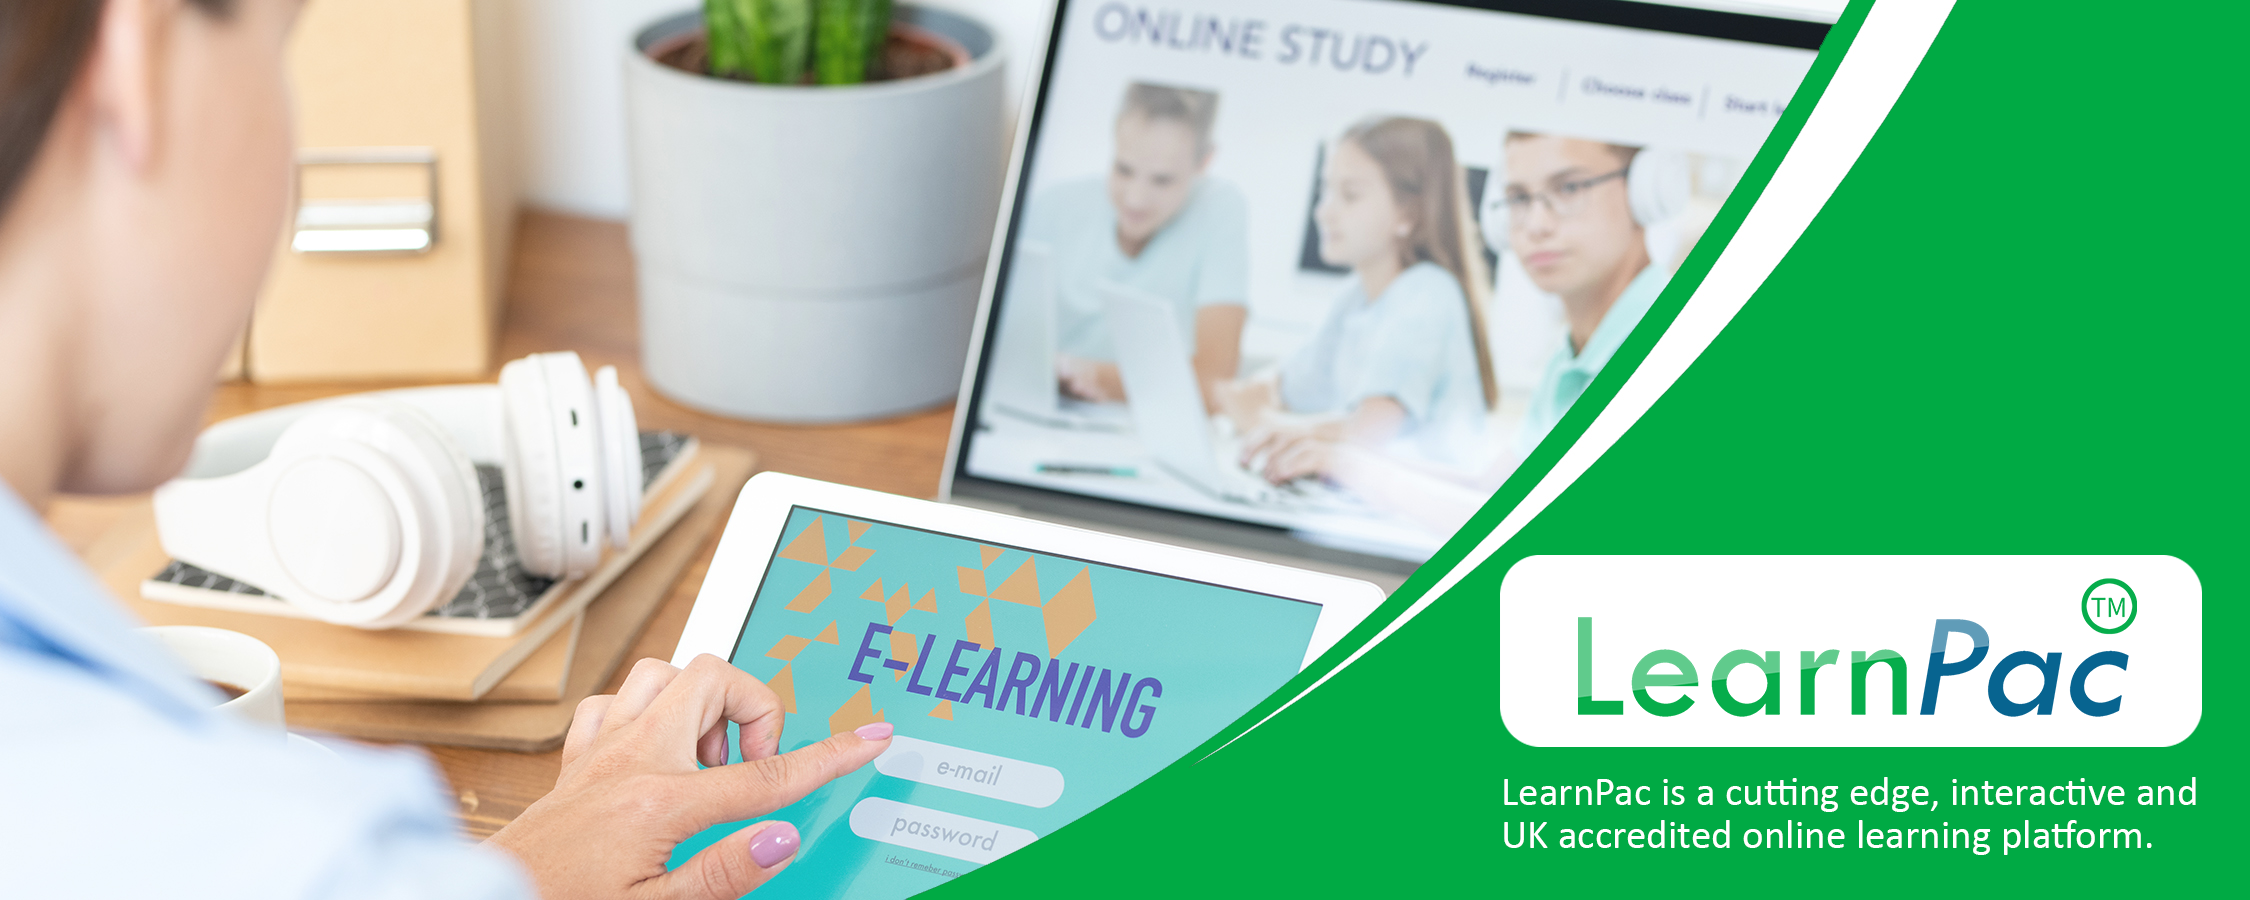 Health and Wellbeing at Work - Online Learning Courses - E-Learning Courses - LearnPac Systems UK --